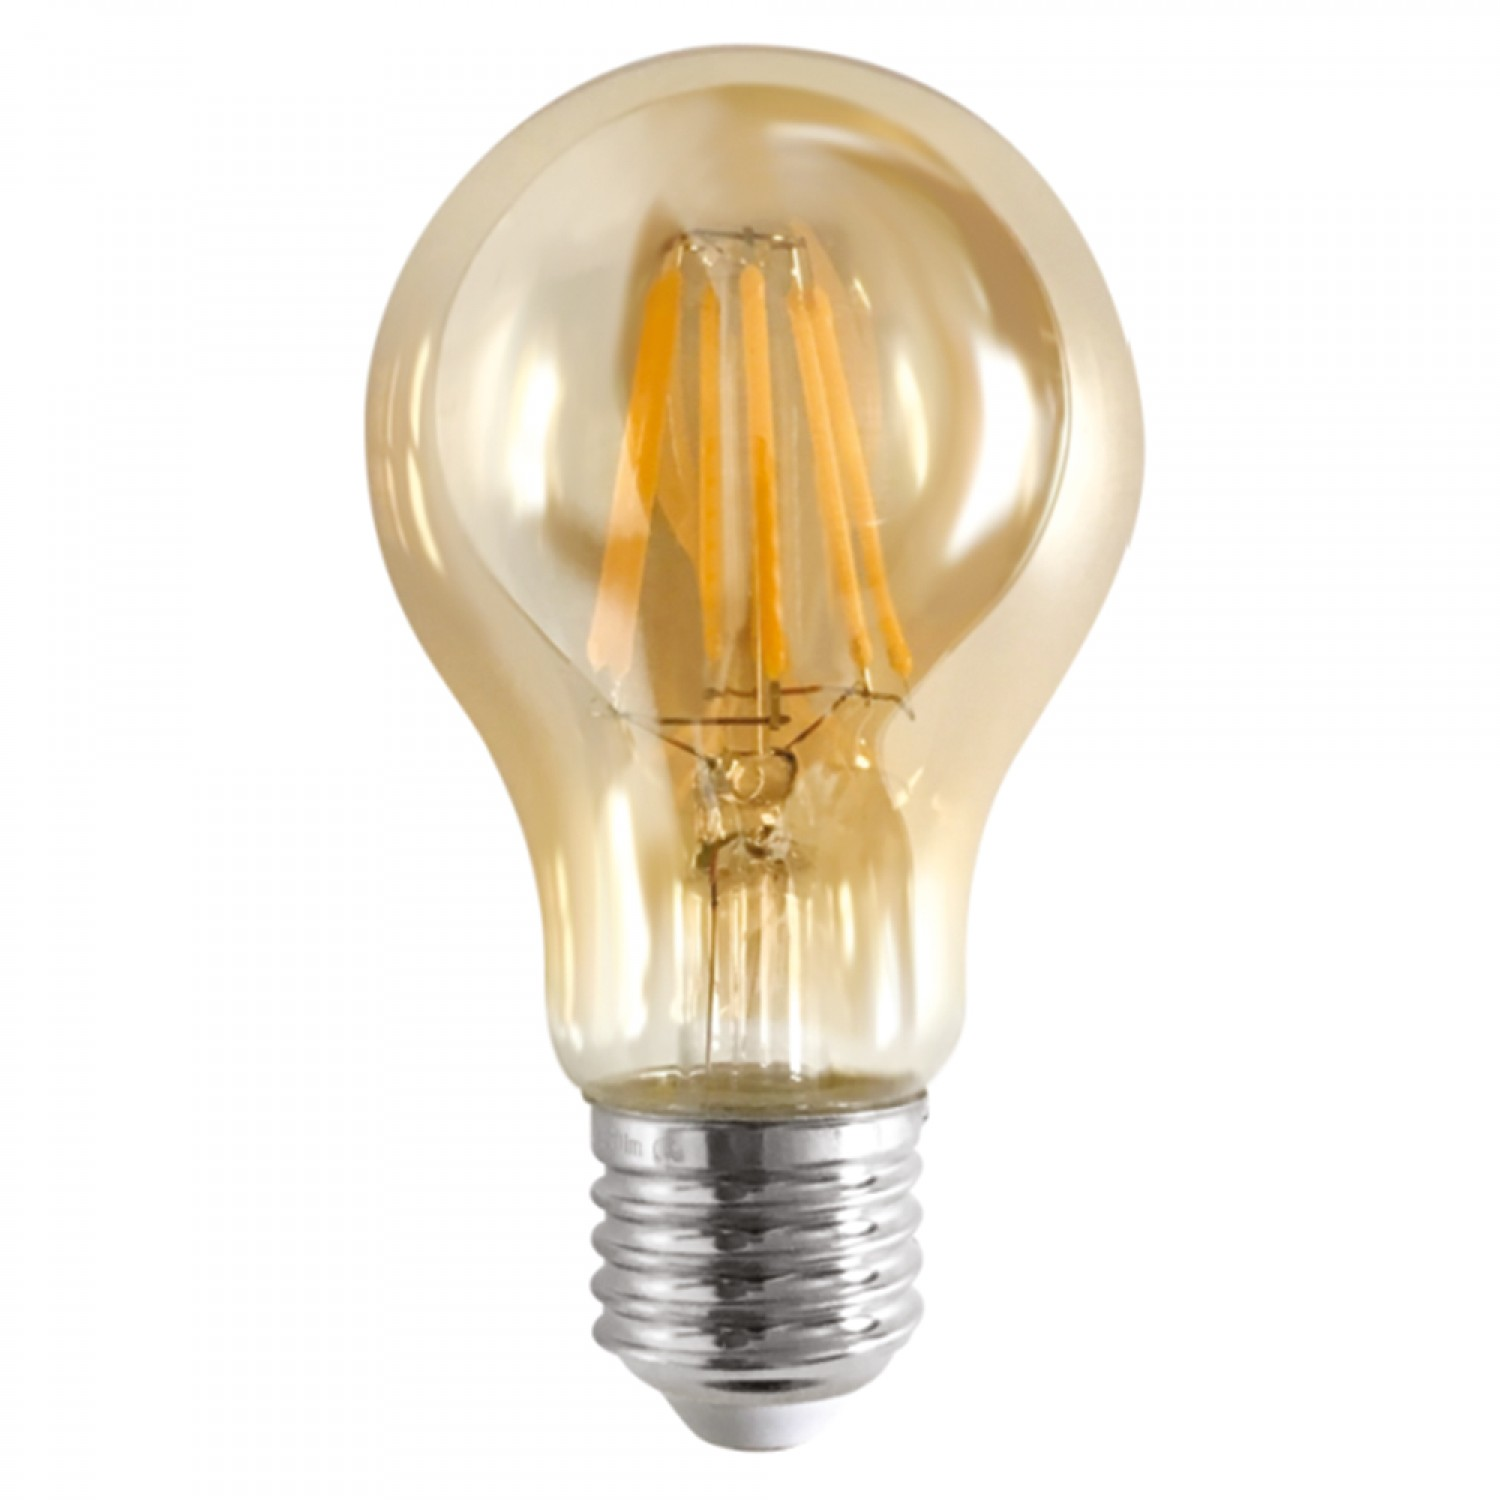 E27 LED Filament A60 8watt Dimmable με μελί κάλυμμα